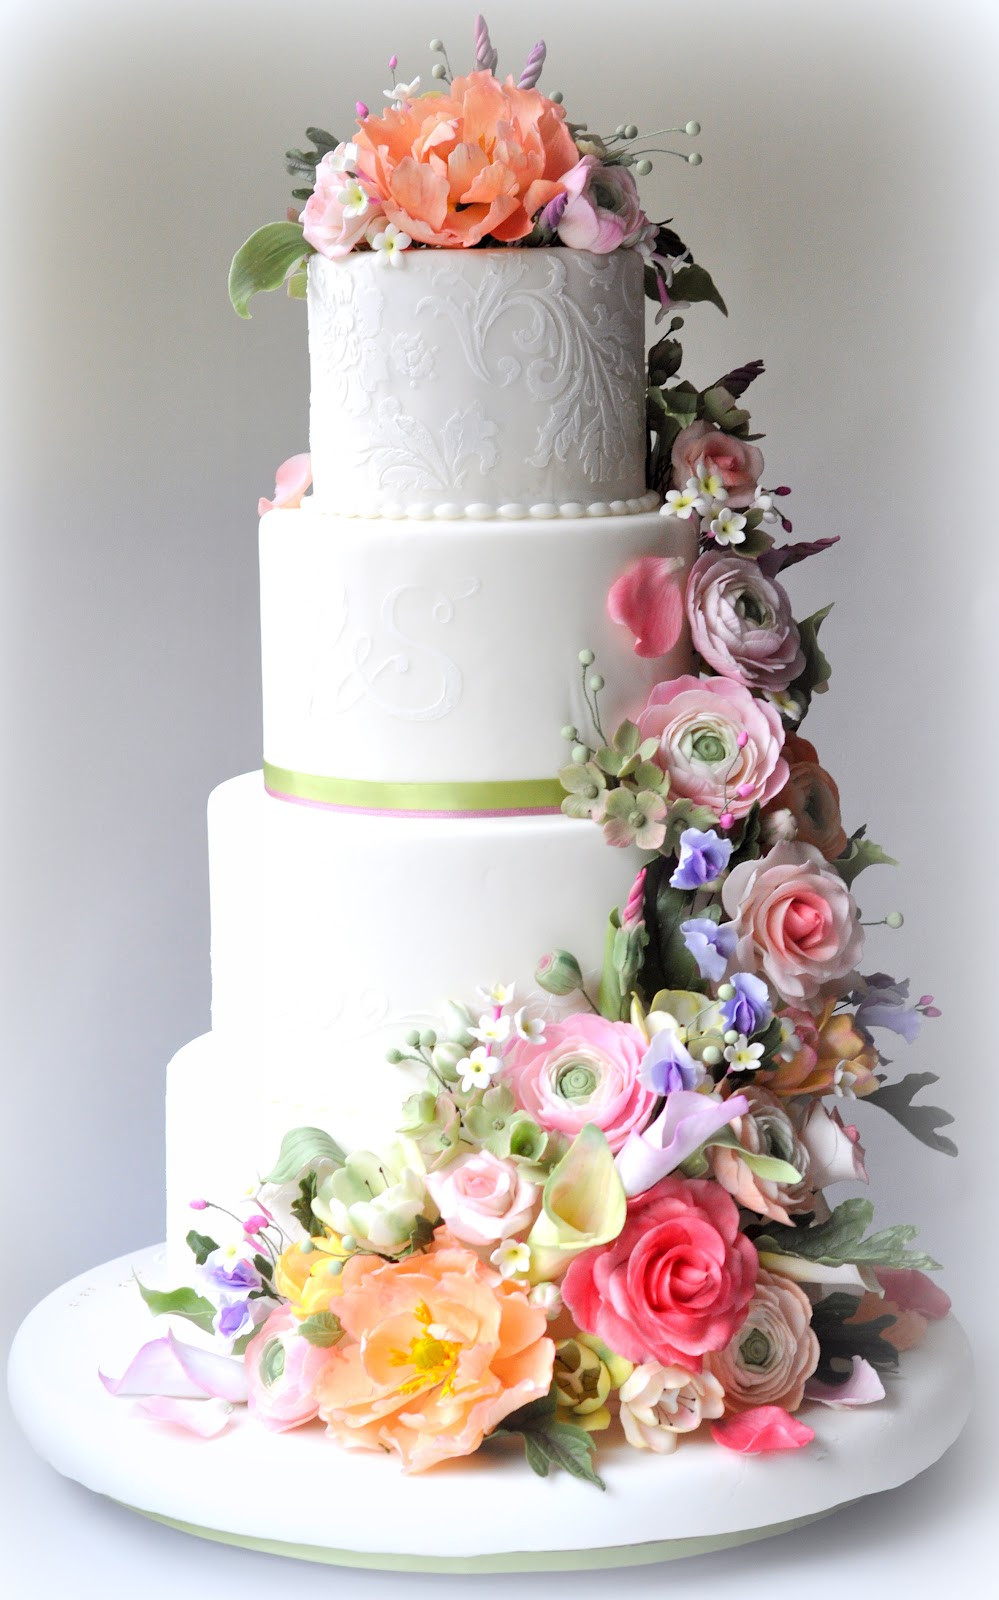 White Wedding Cake With Flowers  7 Gorgeous Reasons to Fall in Love With Spring Weddings